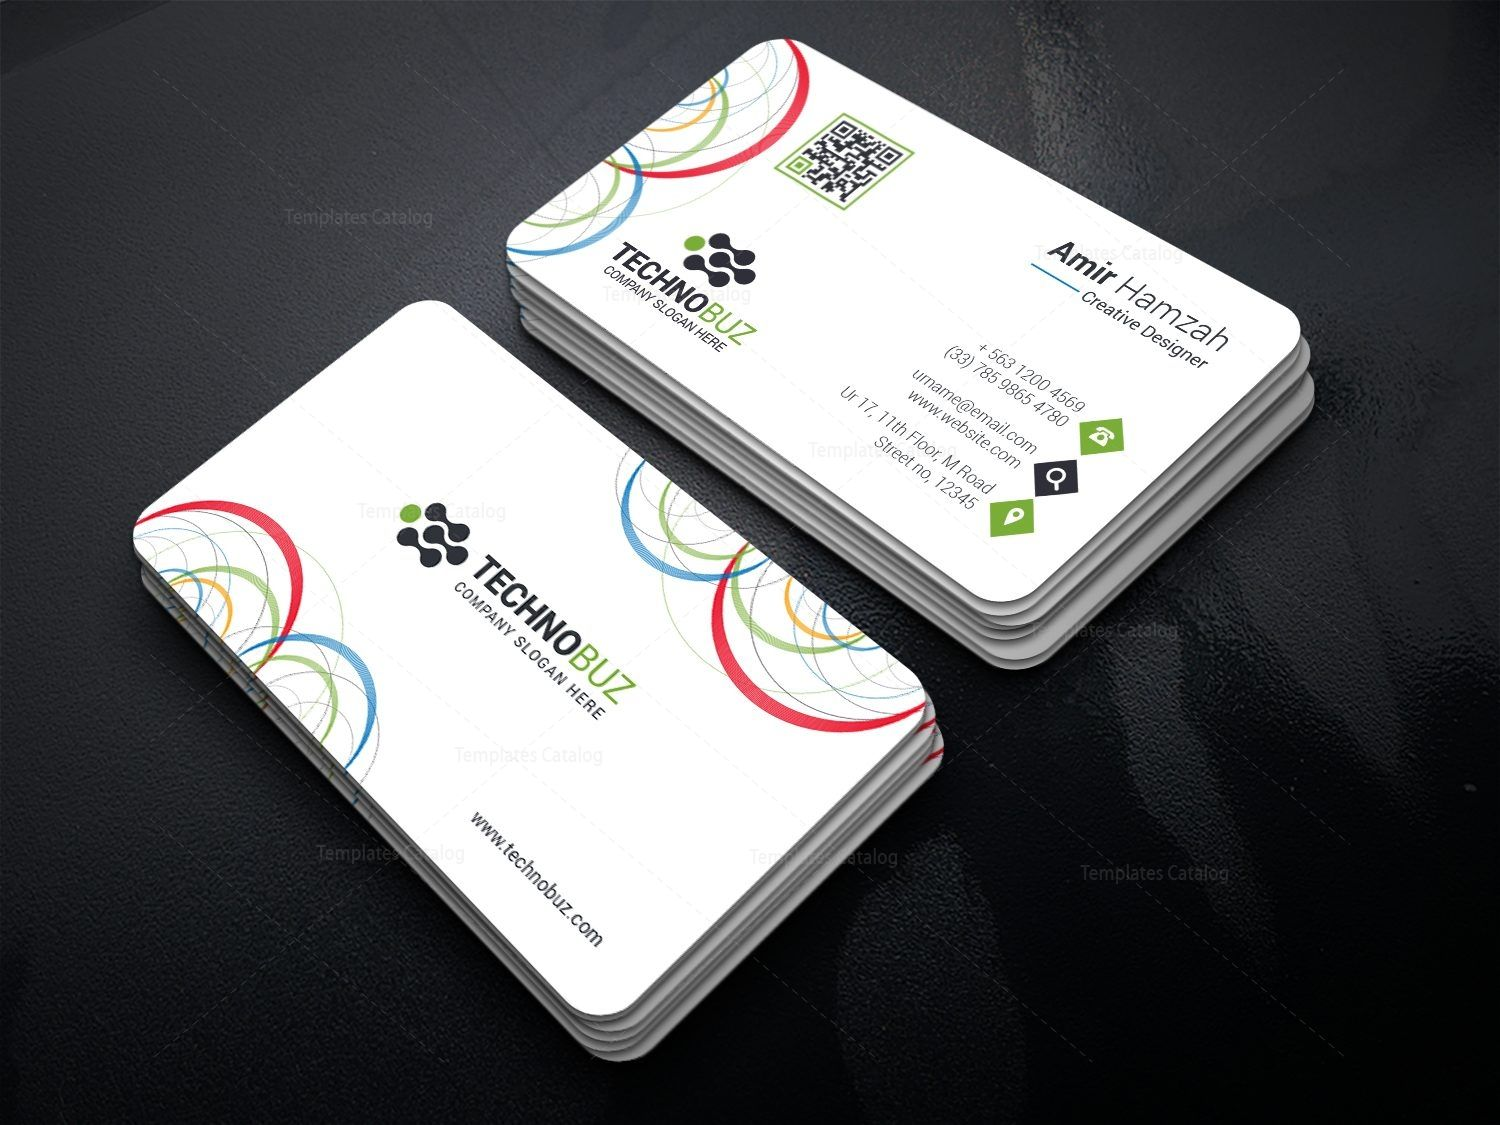 Circle Premium Business Card Template 000812   Graphic Template     Circle Premium Business Card Template 000812